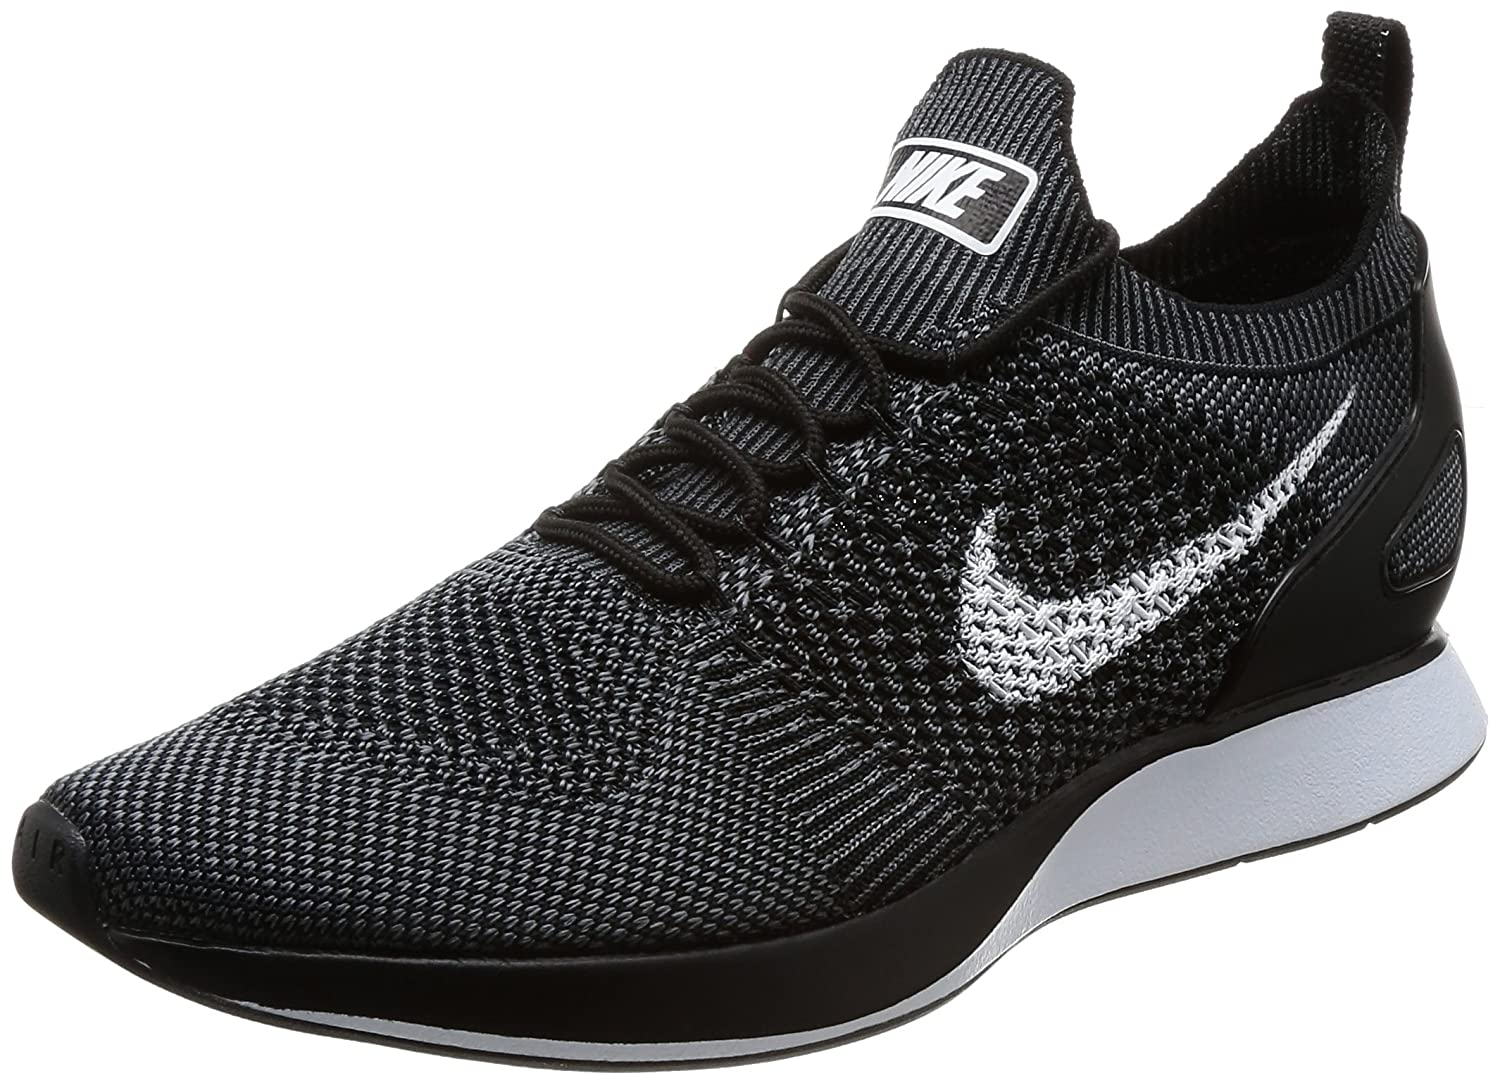 Nike Women's Free Rn Flyknit 2017 Running Shoes B00IQ25U5Y Large|Black White Dark Grey 001